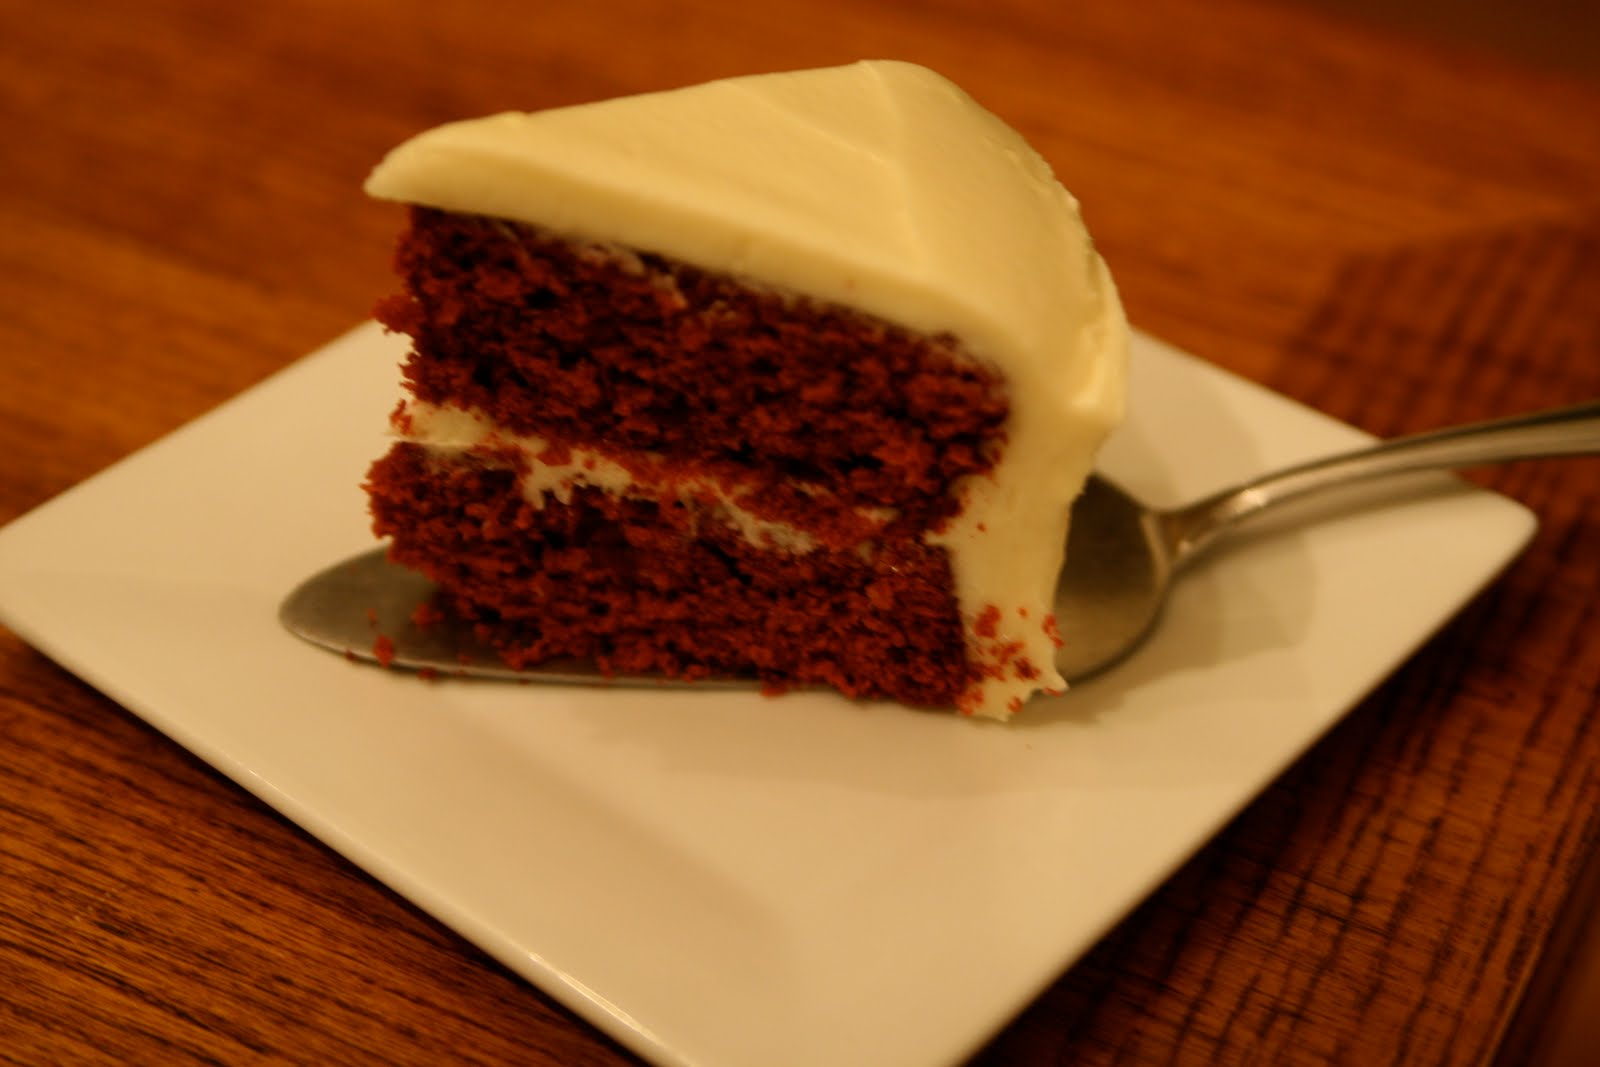 Can someone help me write an PROCESS essay on, how to bake/ prepare a red velvet cake.?